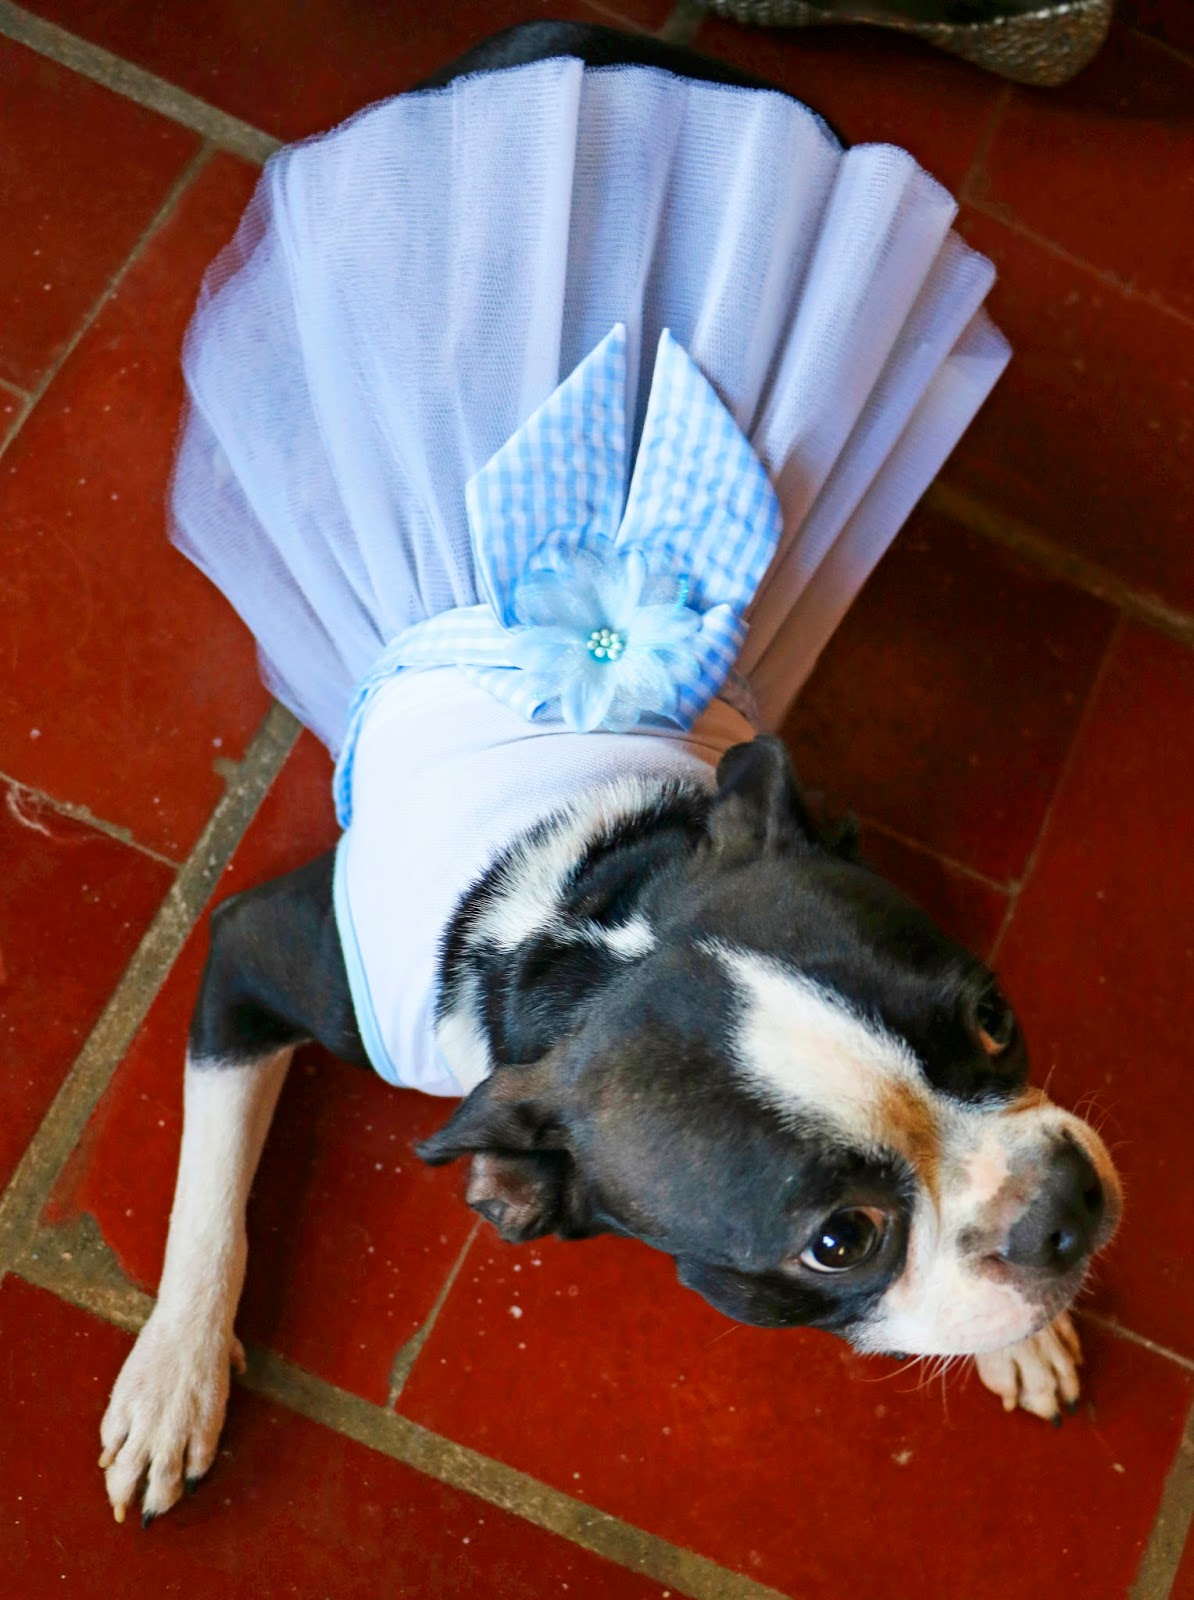 Super cute Boston Terrier in a dress!